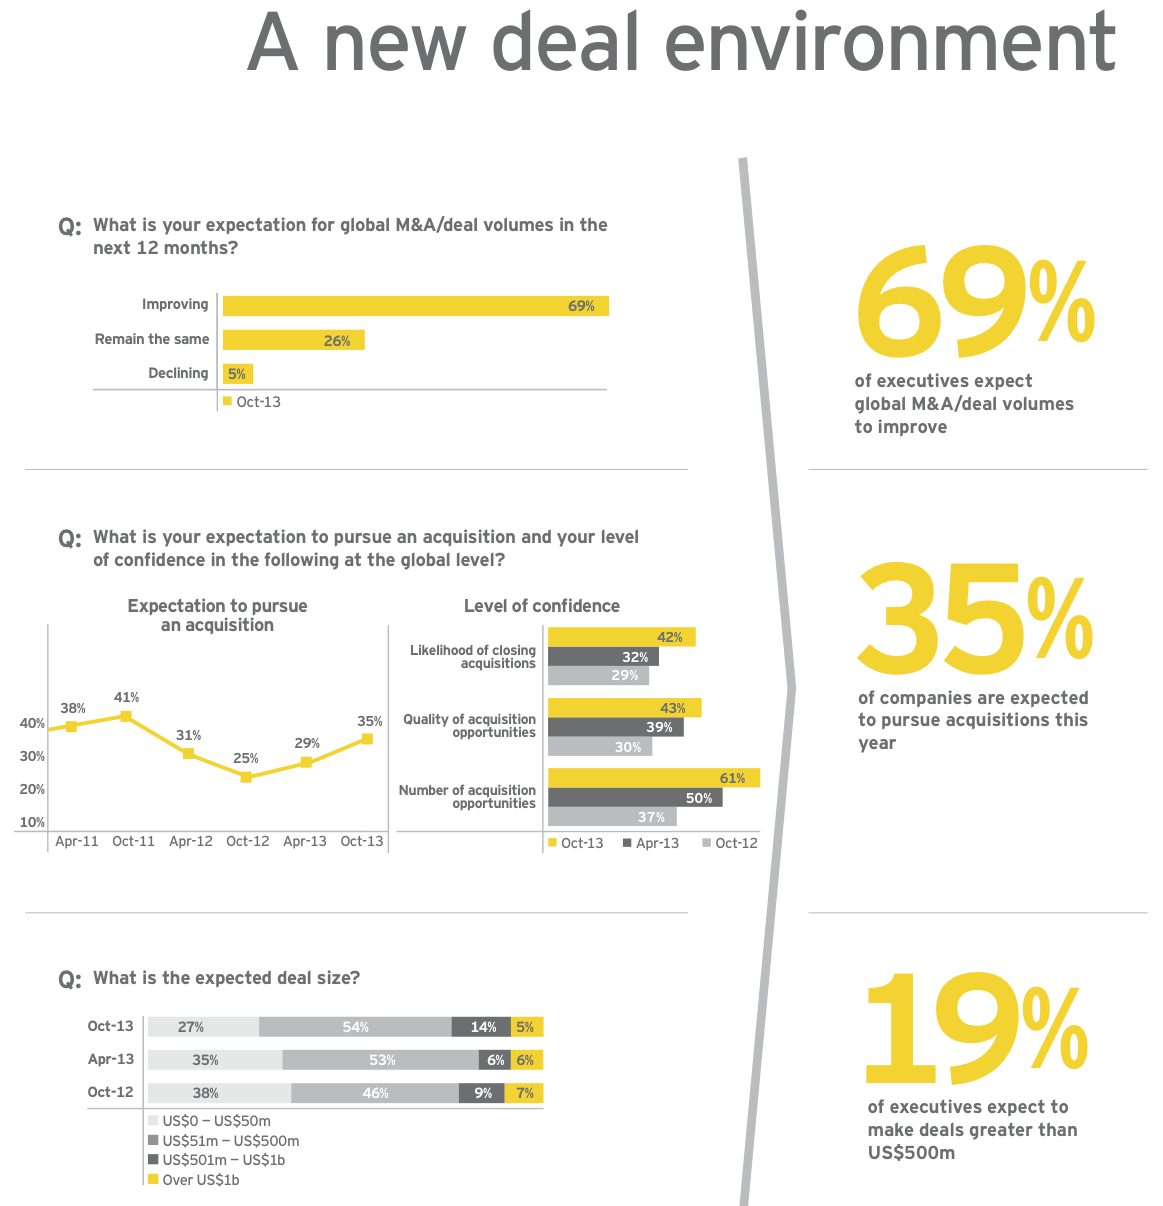 Figure 6: A new deal environment